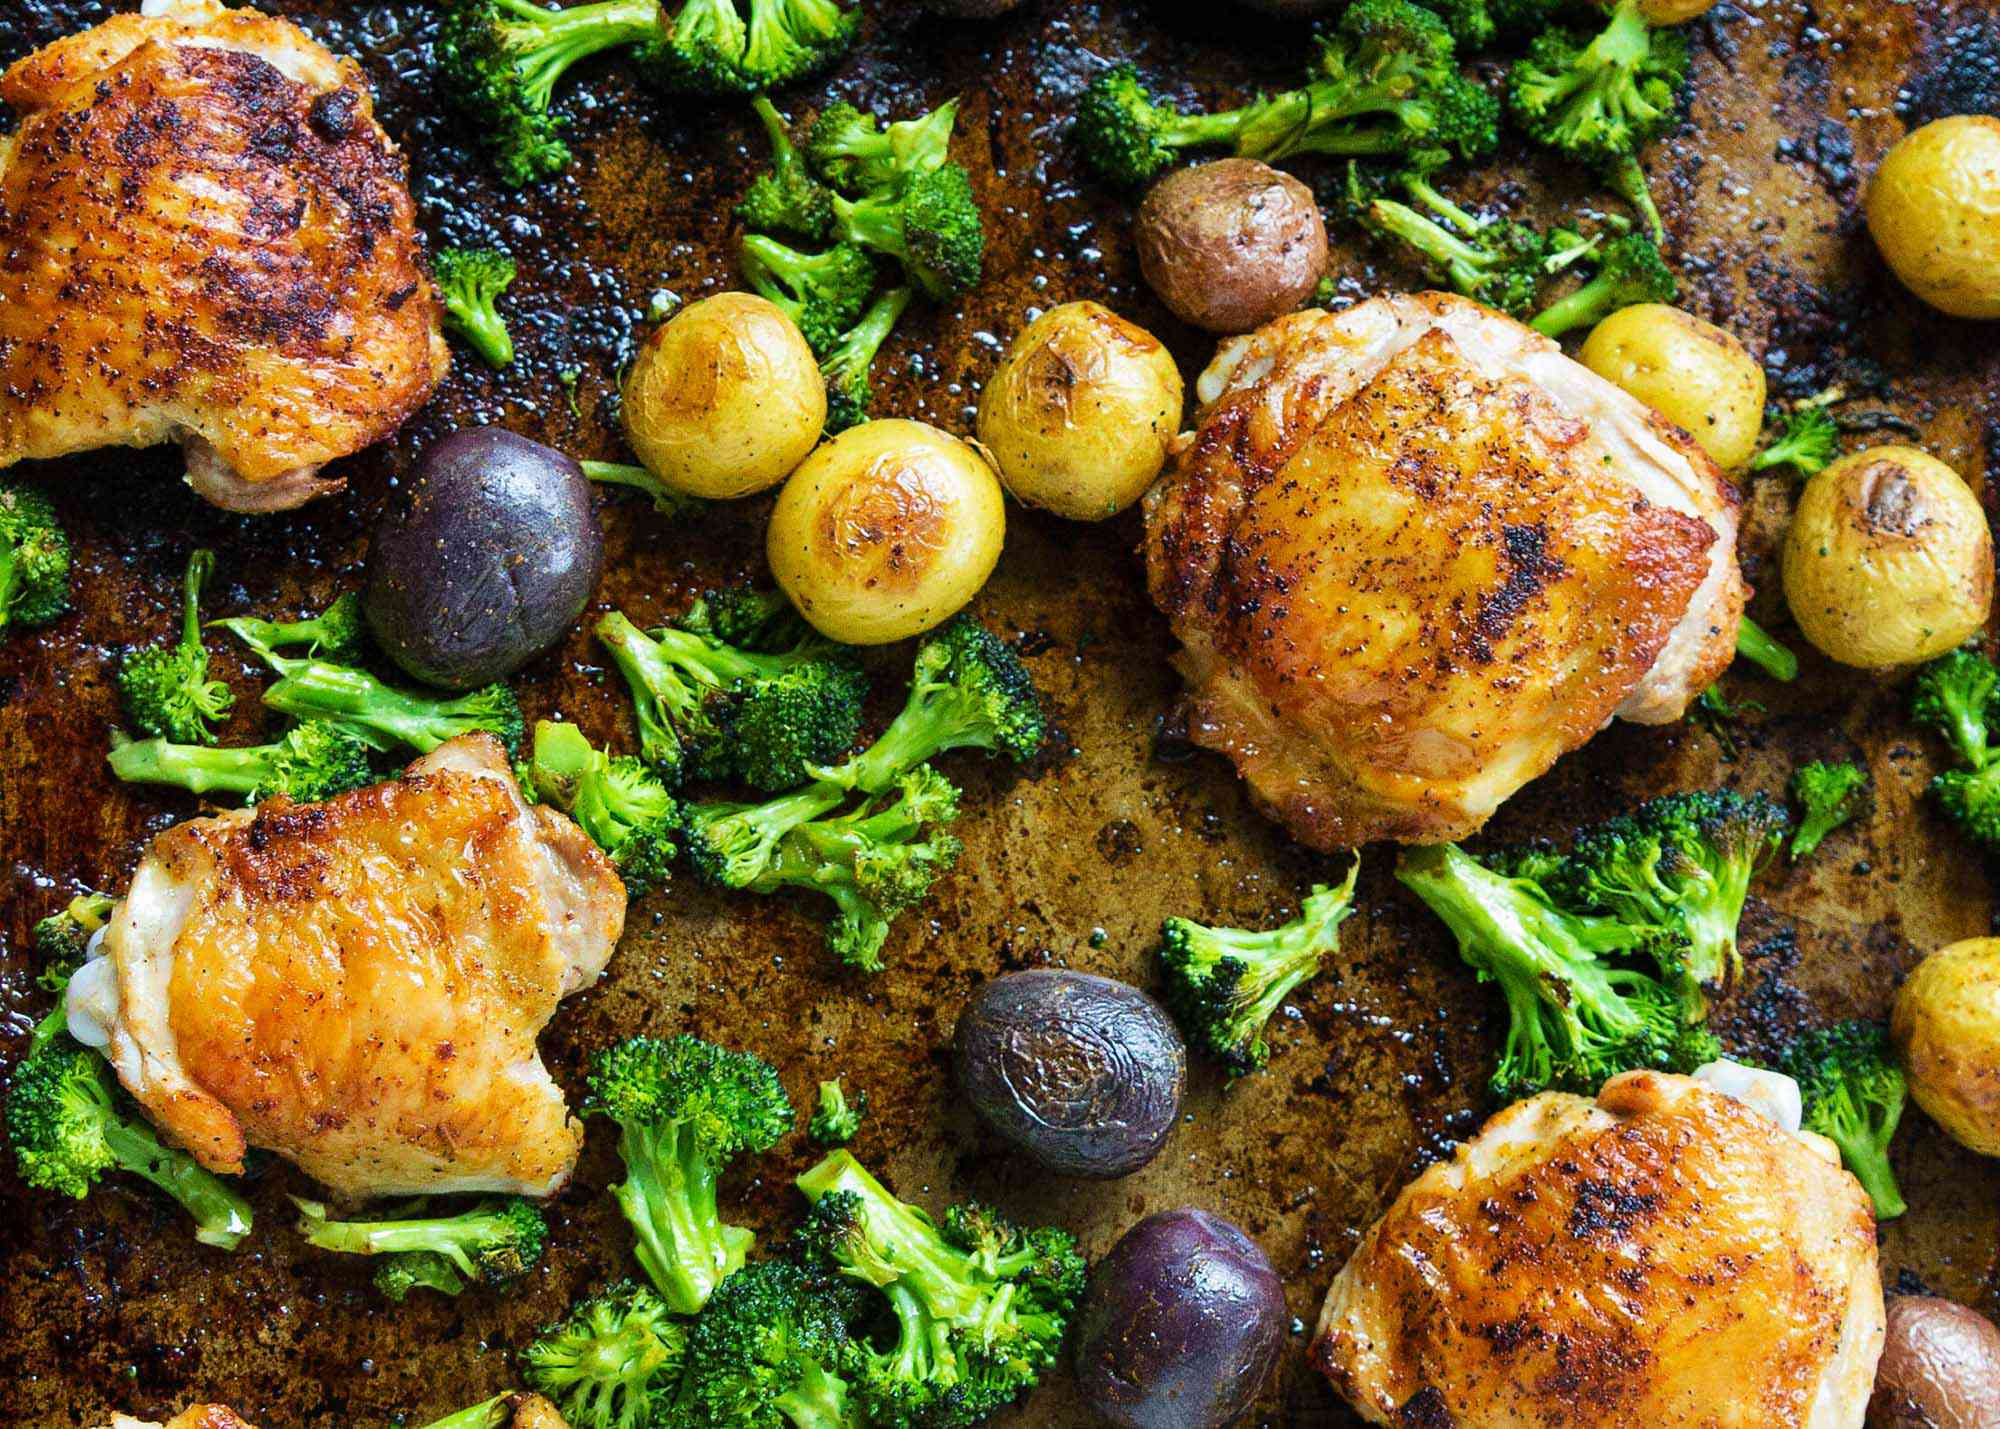 Sheet Pan Chicken with Roasted Broccoli and Potatoes